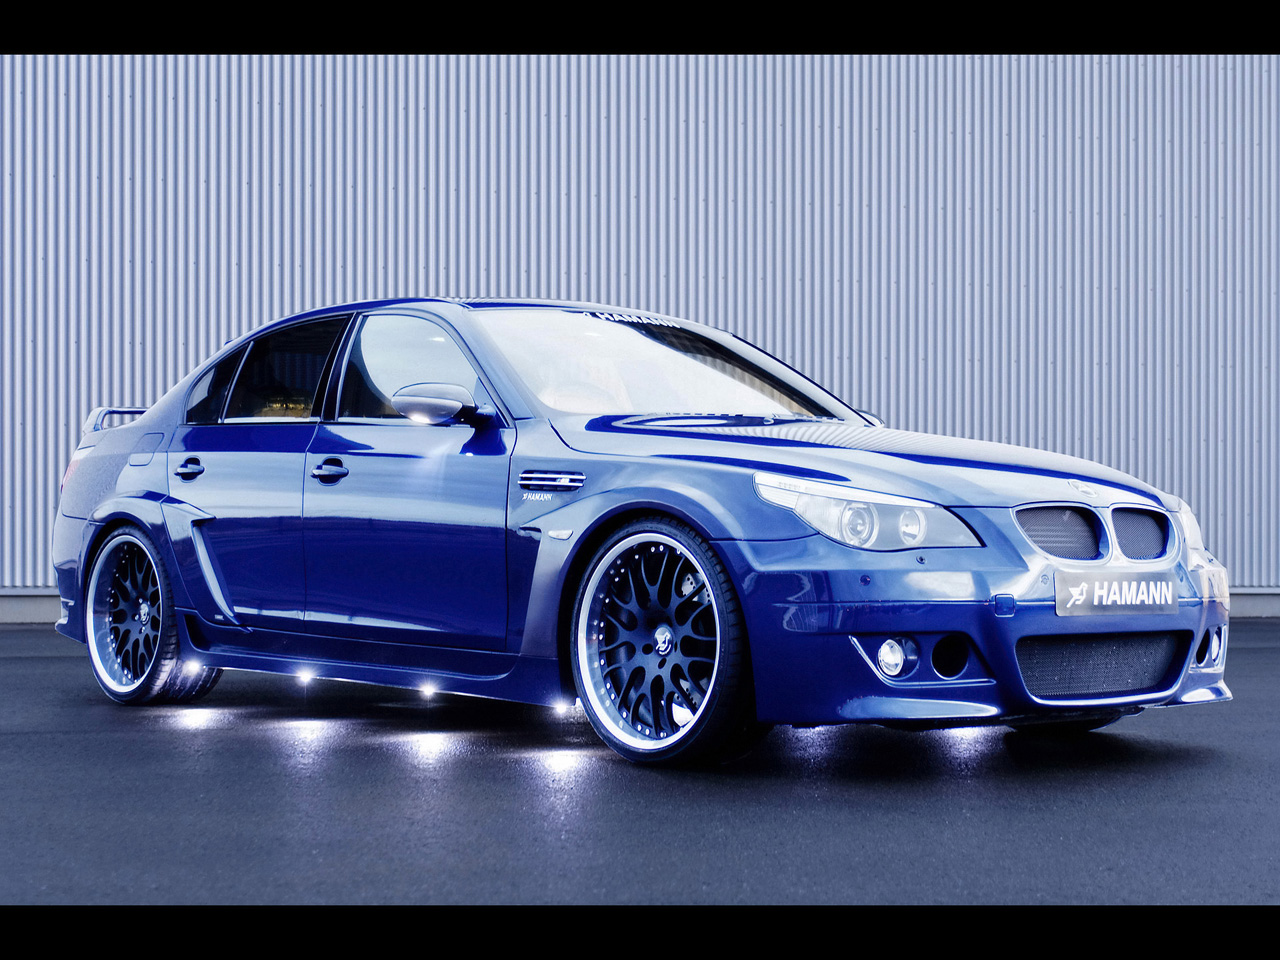 2006 Hamann BMW M5 Edition Race Blue Front Right 1280x960 Wallpaper 1280x960